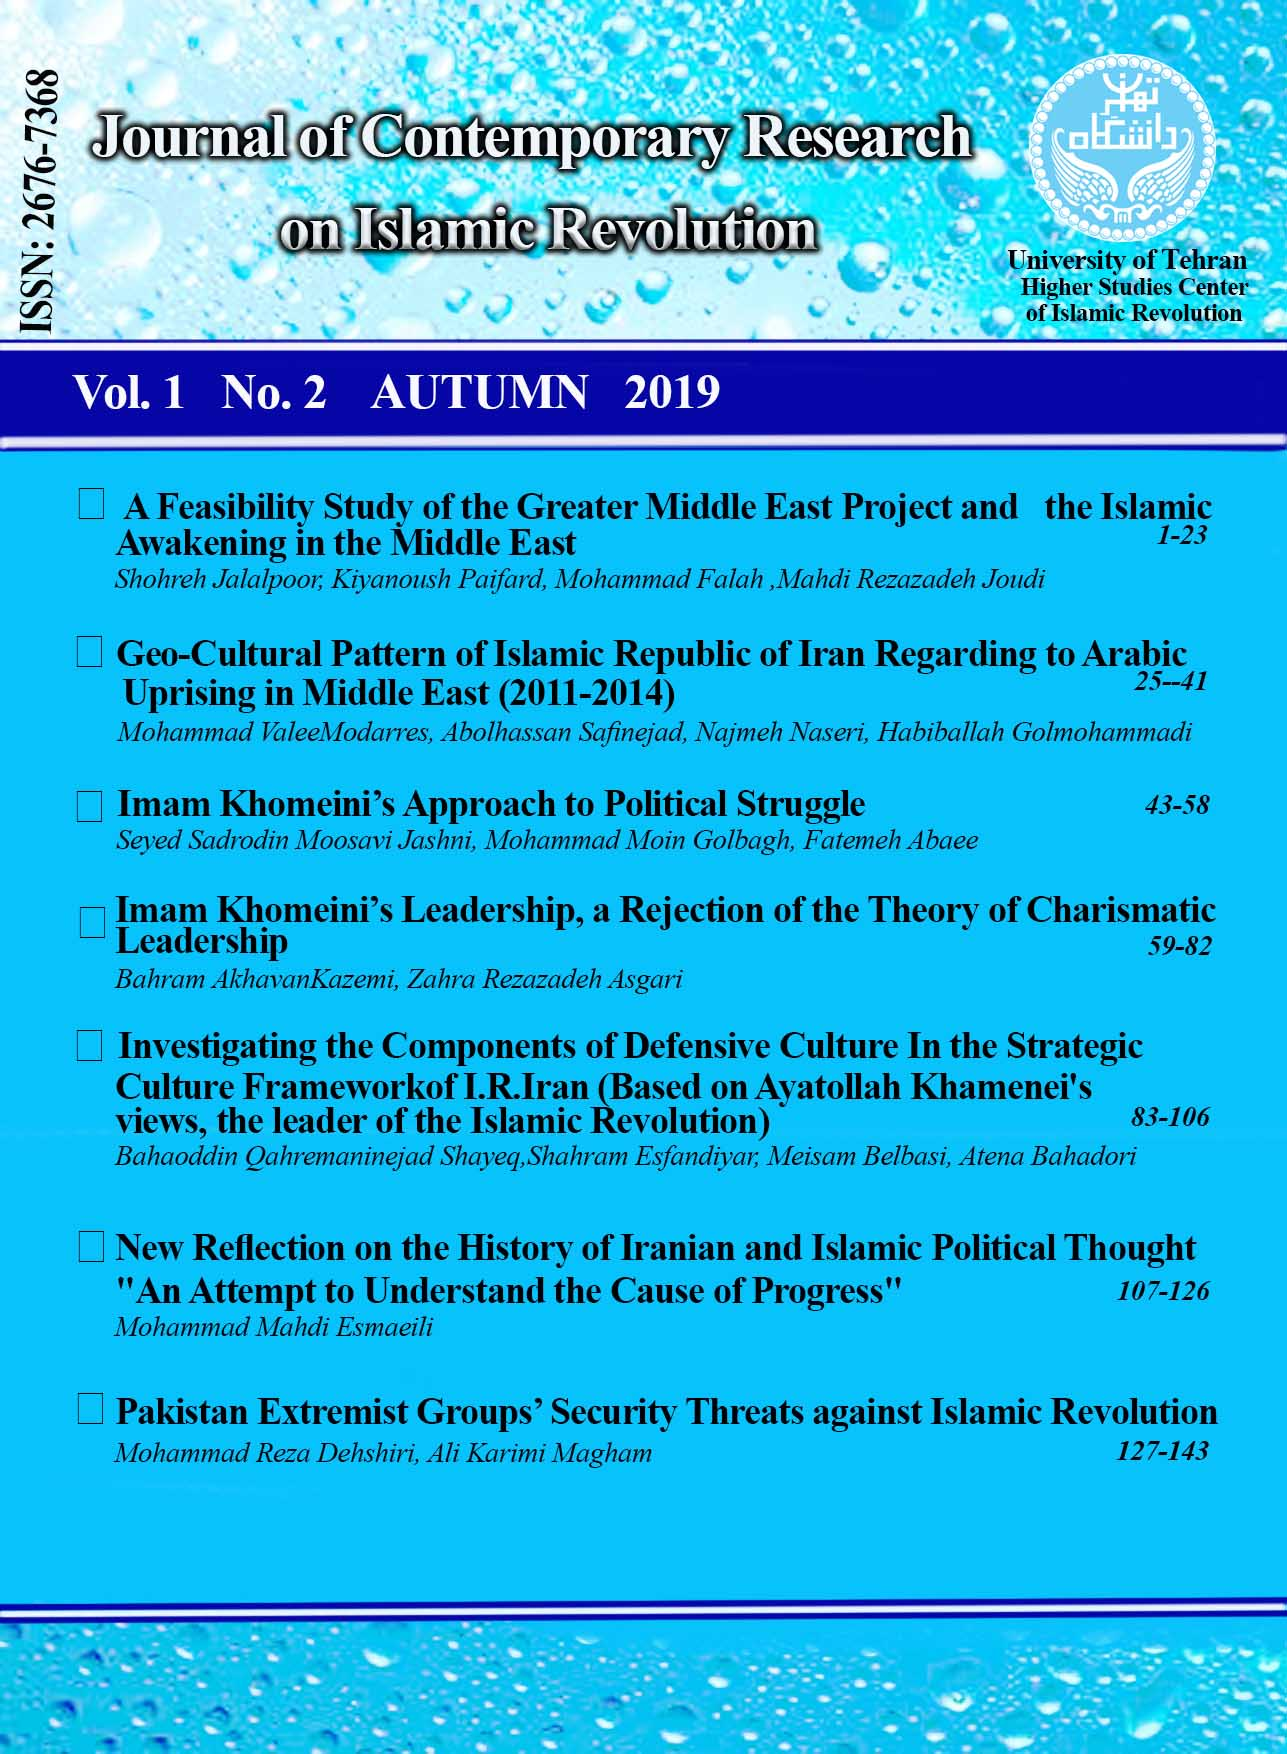 Journal of Contemporary Research on Islamic Revolution